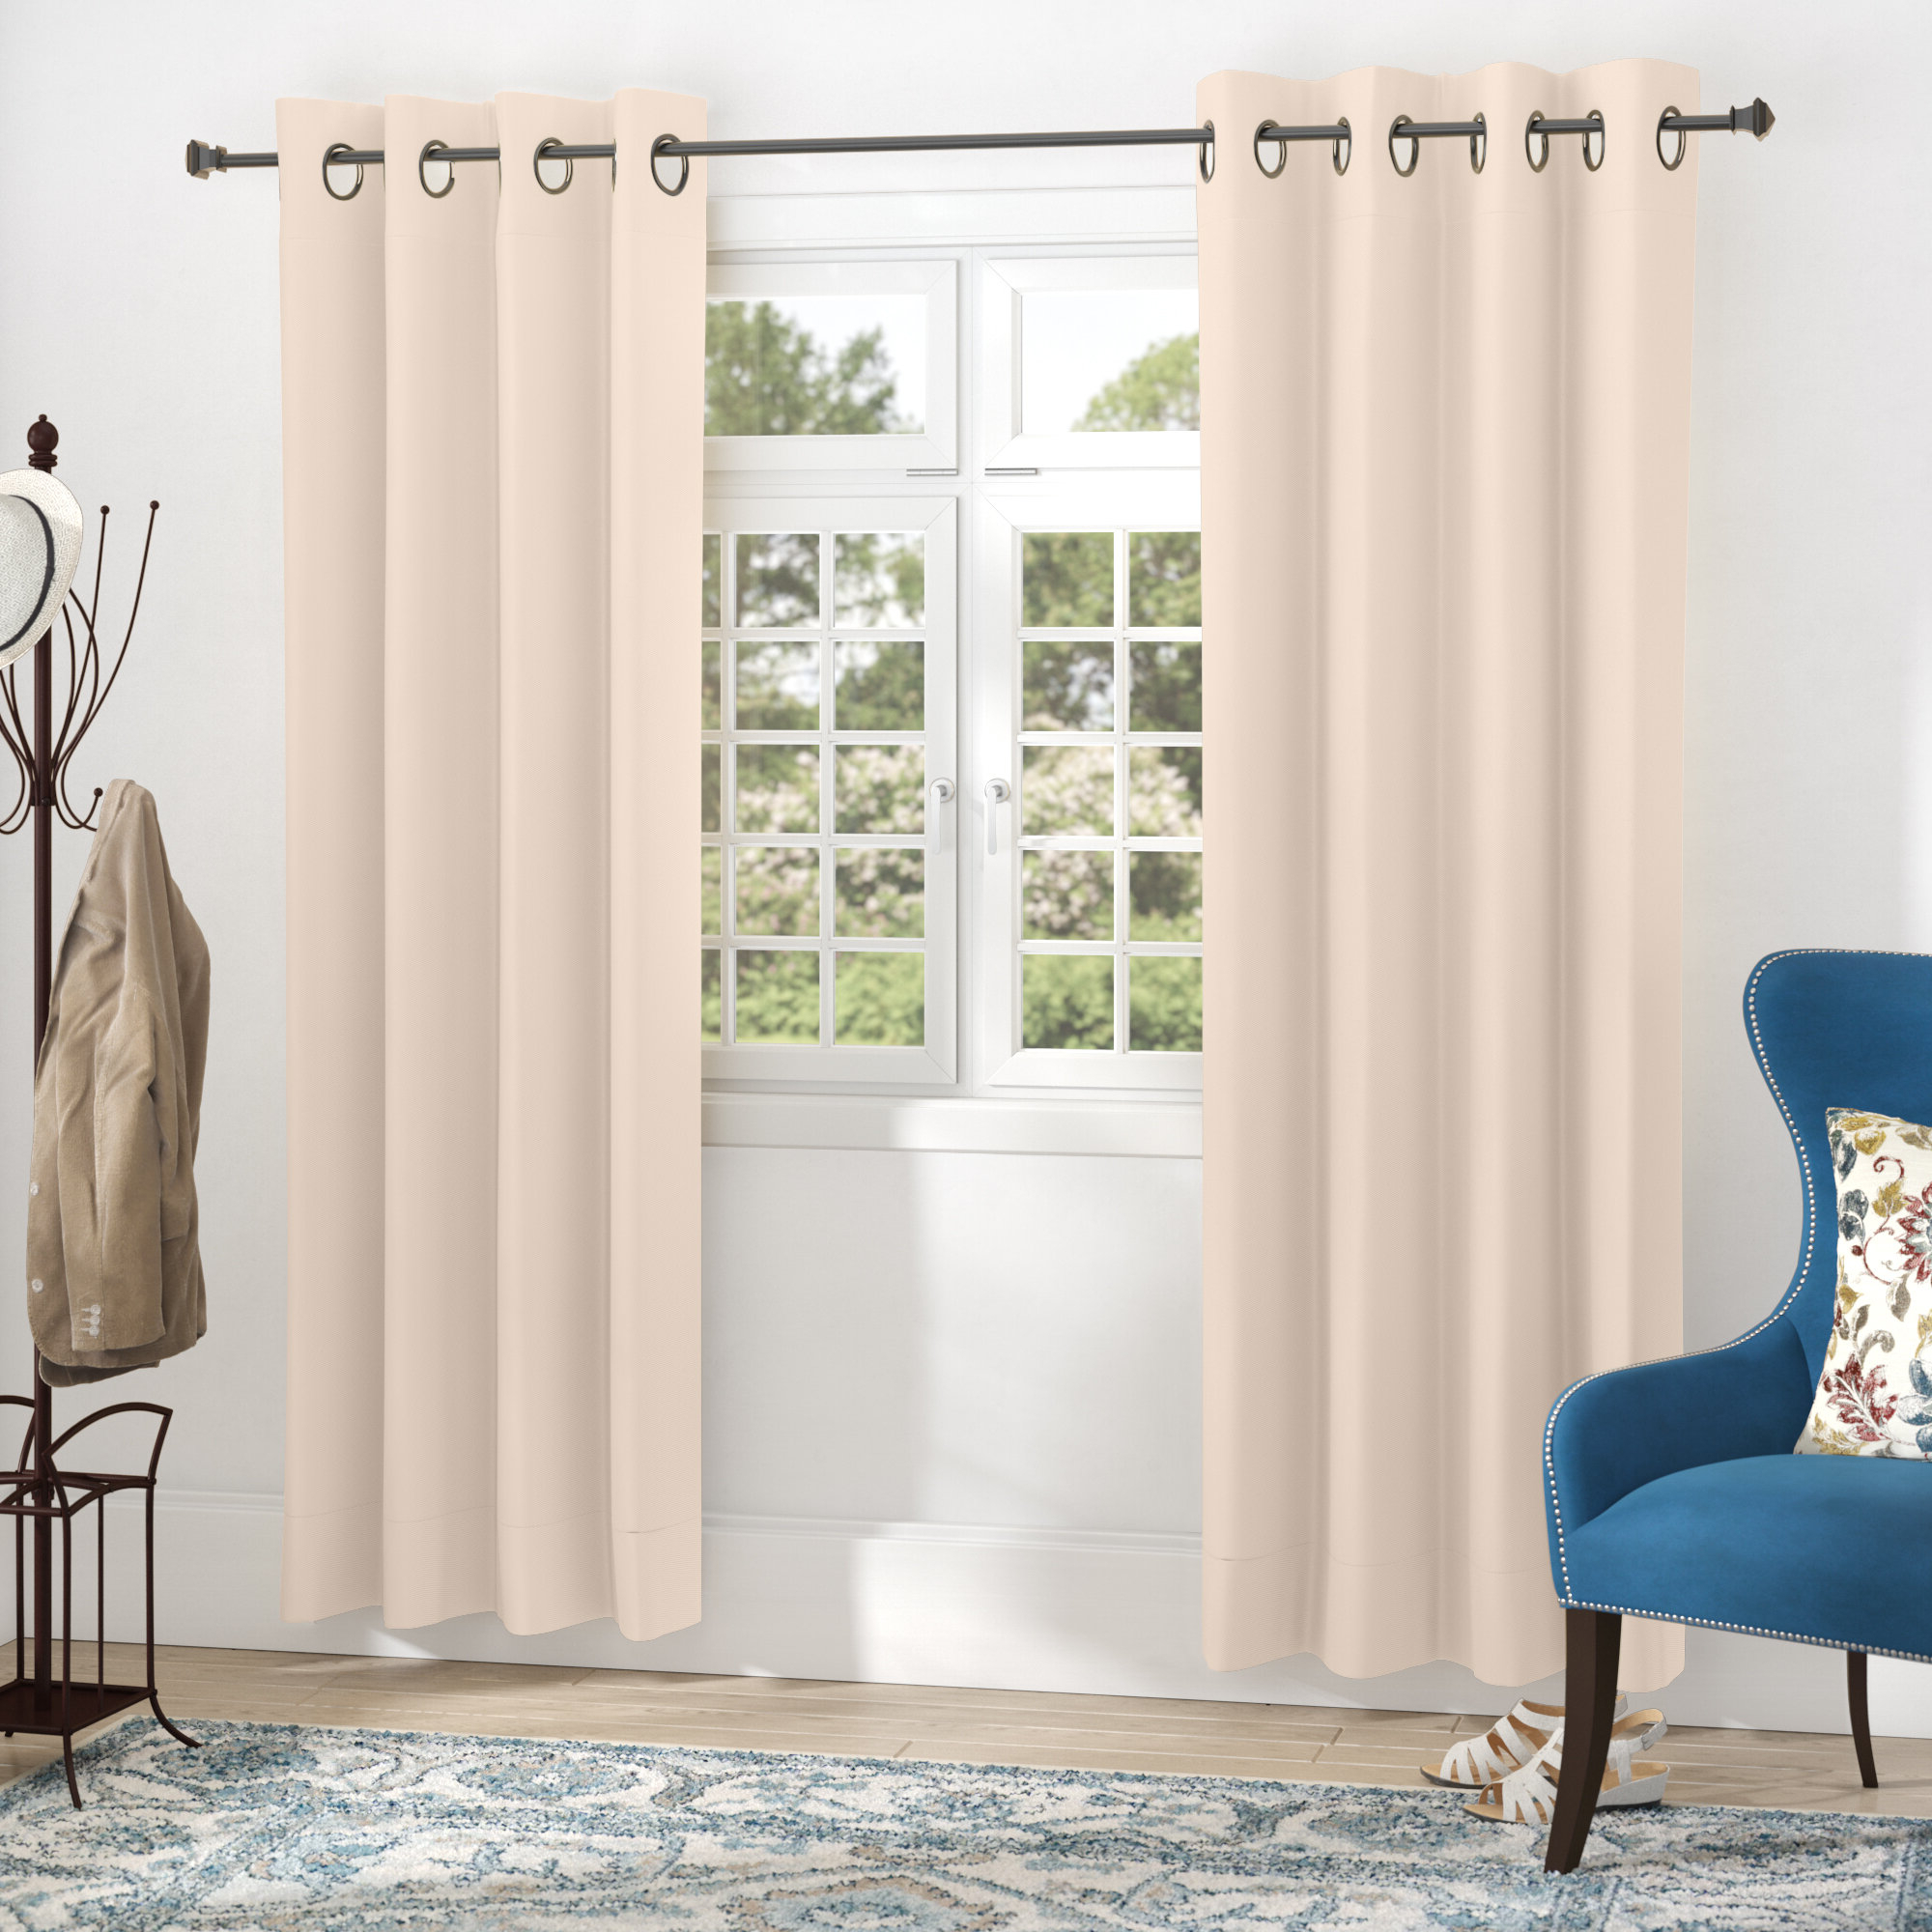 Schaeffer Solid Blackout Thermal Grommet Curtain Panels With 2020 Blackout Grommet Curtain Panels (View 18 of 20)